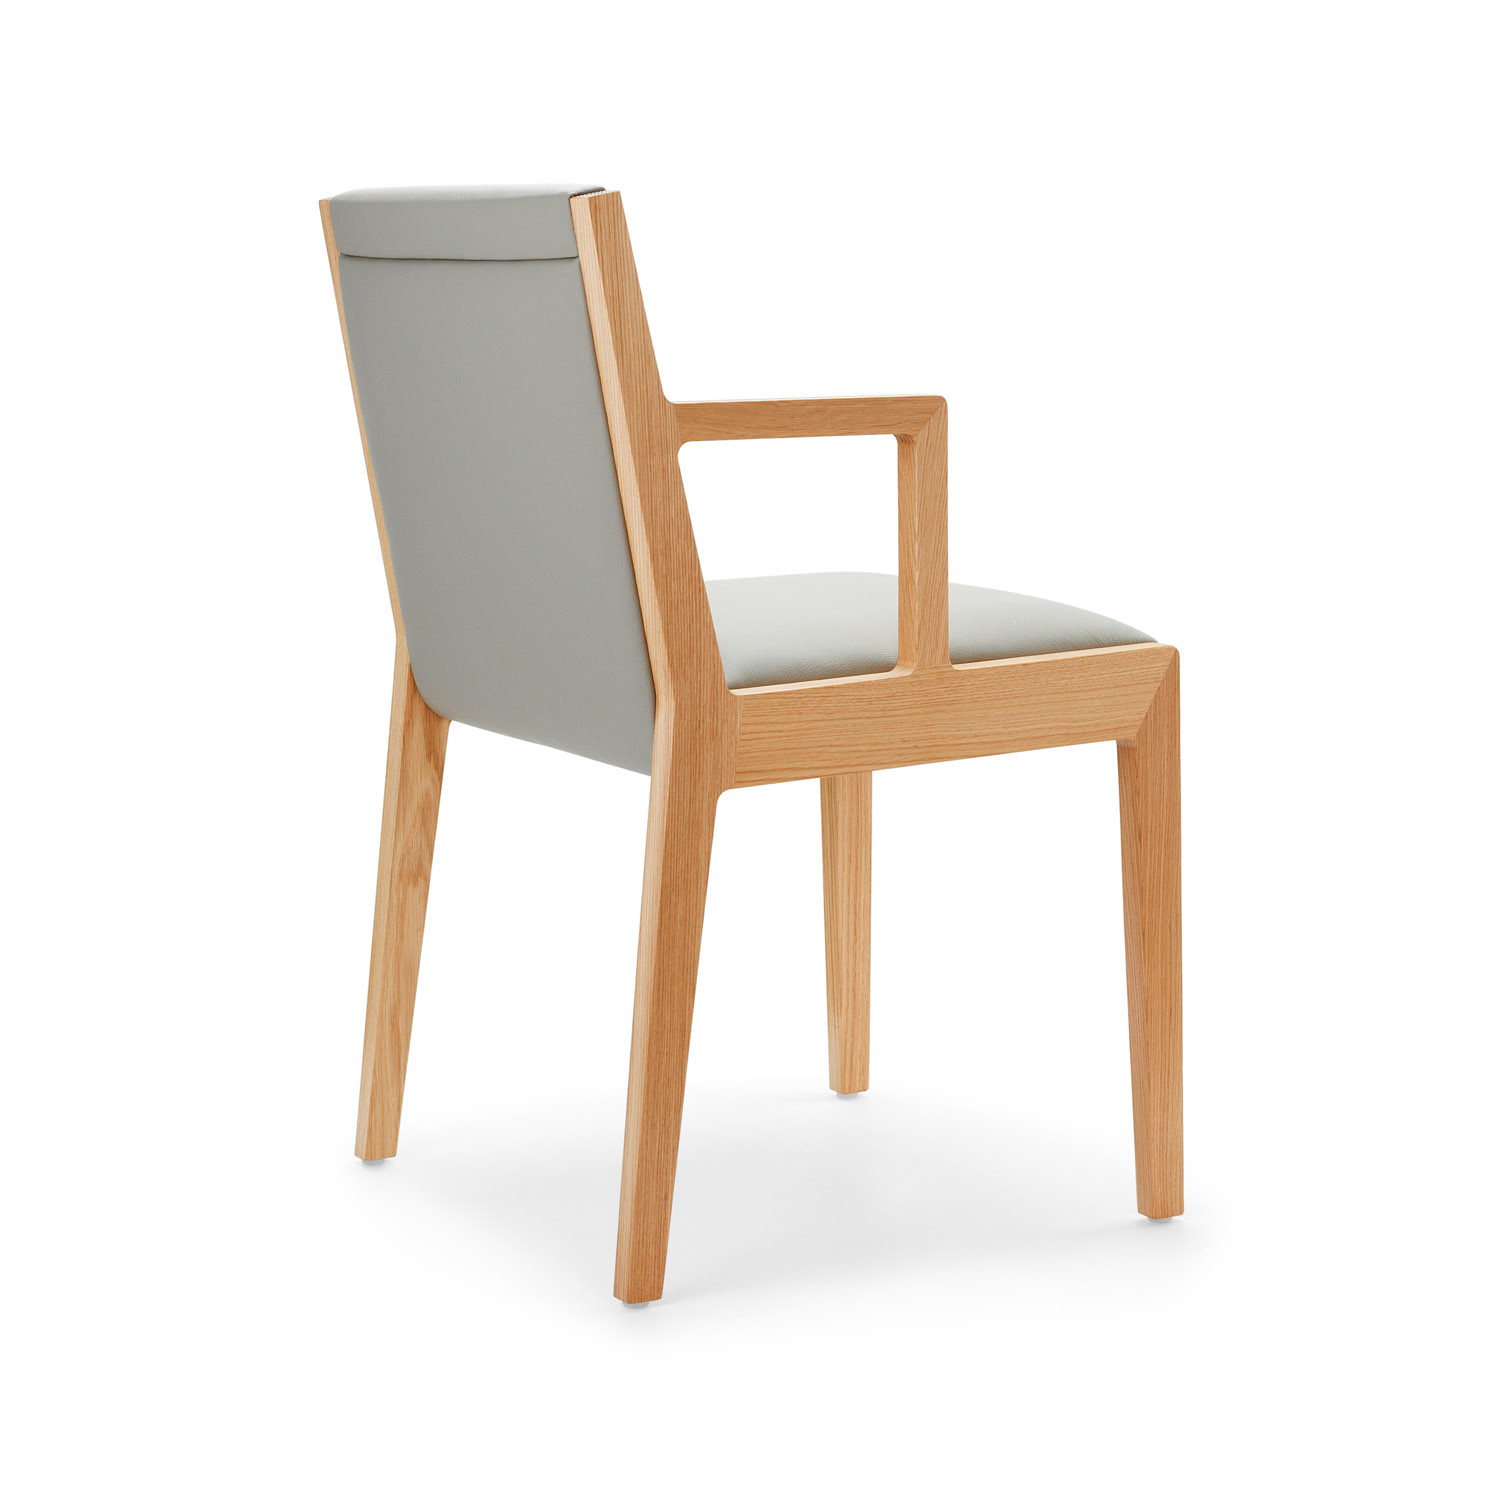 Keats Chair by Lyndon Design